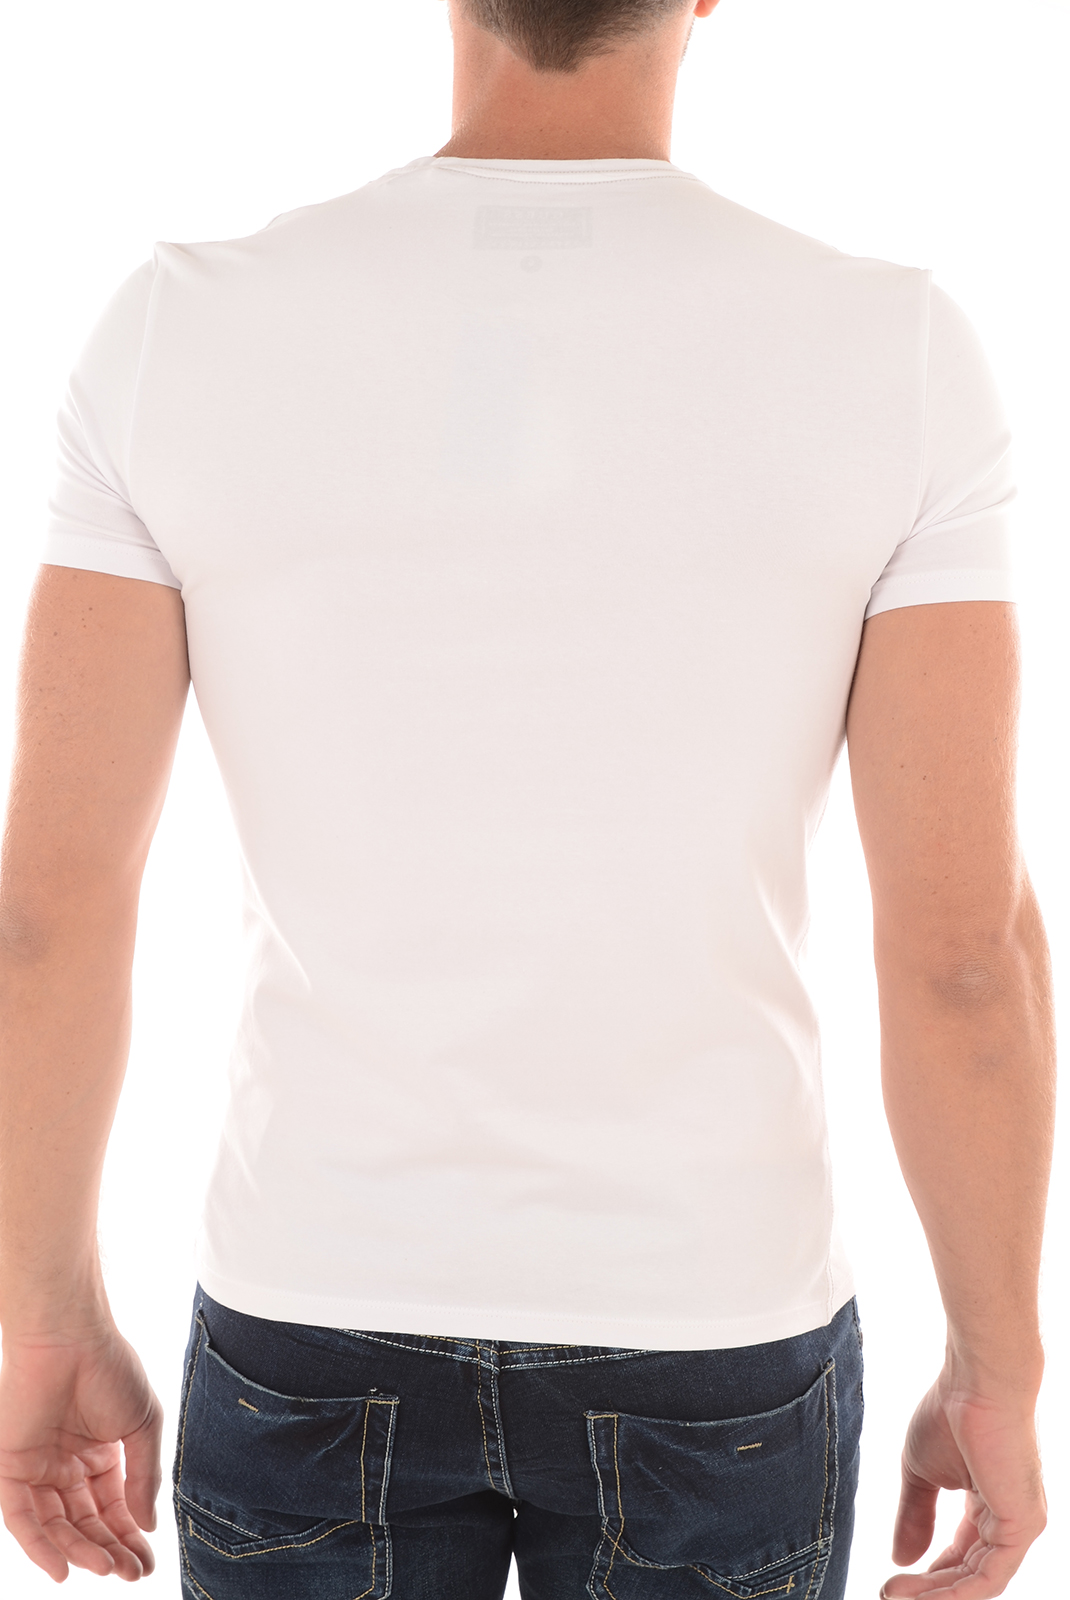 Tee-shirts  Guess jeans M63I62J1300 A009 BLANC